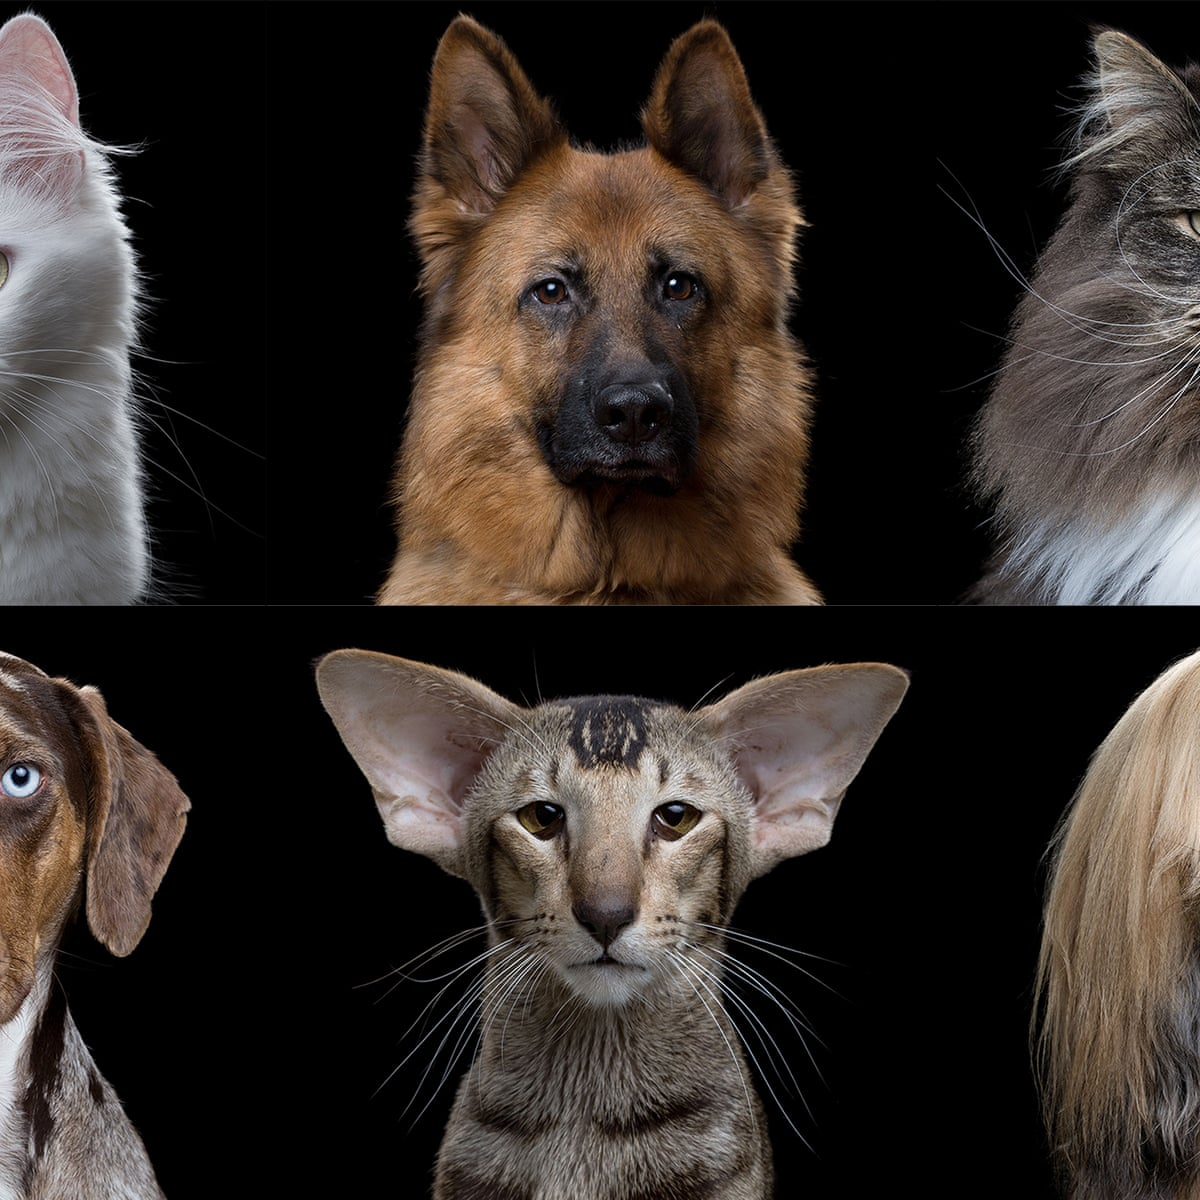 Cats Vs Dogs In Terms Of Evolution Are We Barking Up The Wrong Tree Science The Guardian